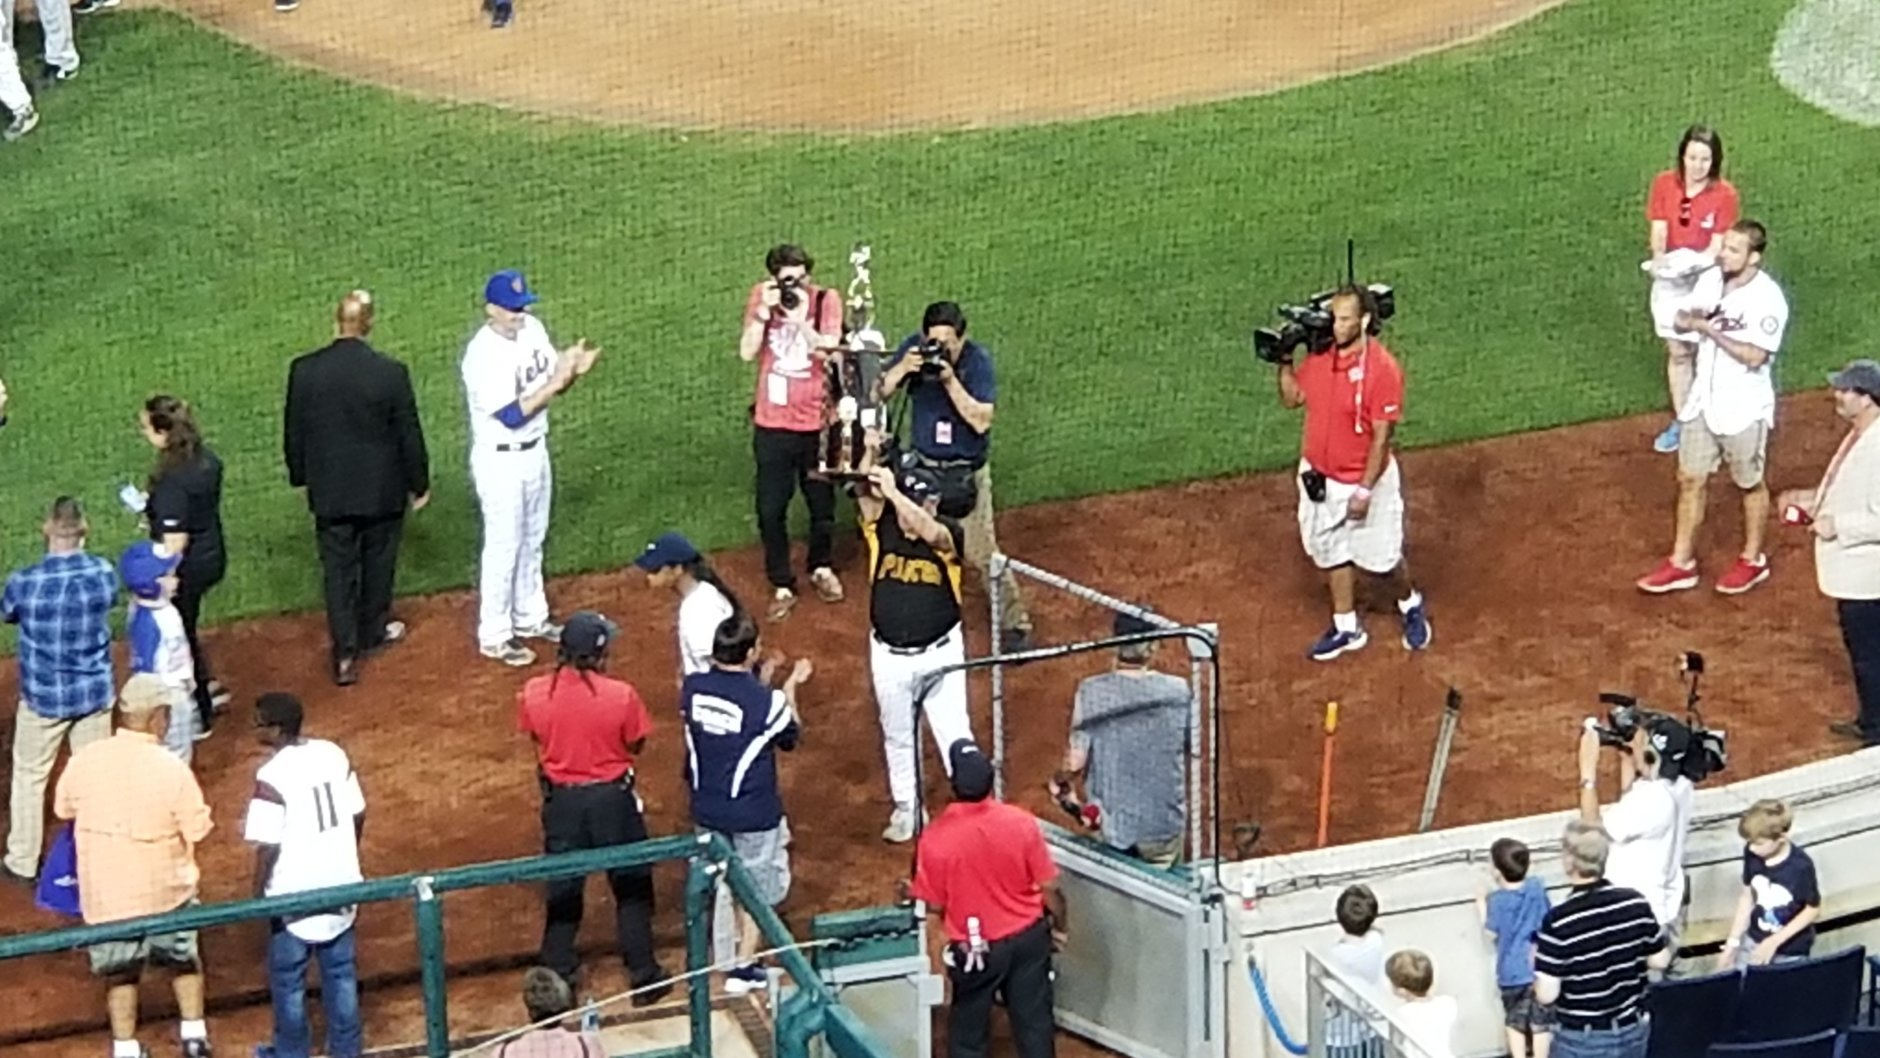 The Congressional Baseball Game ends with Democrats beating Republicans, 21-5, on Thursday, June 14, 2018. (WTOP/Albert Shimabukuro)